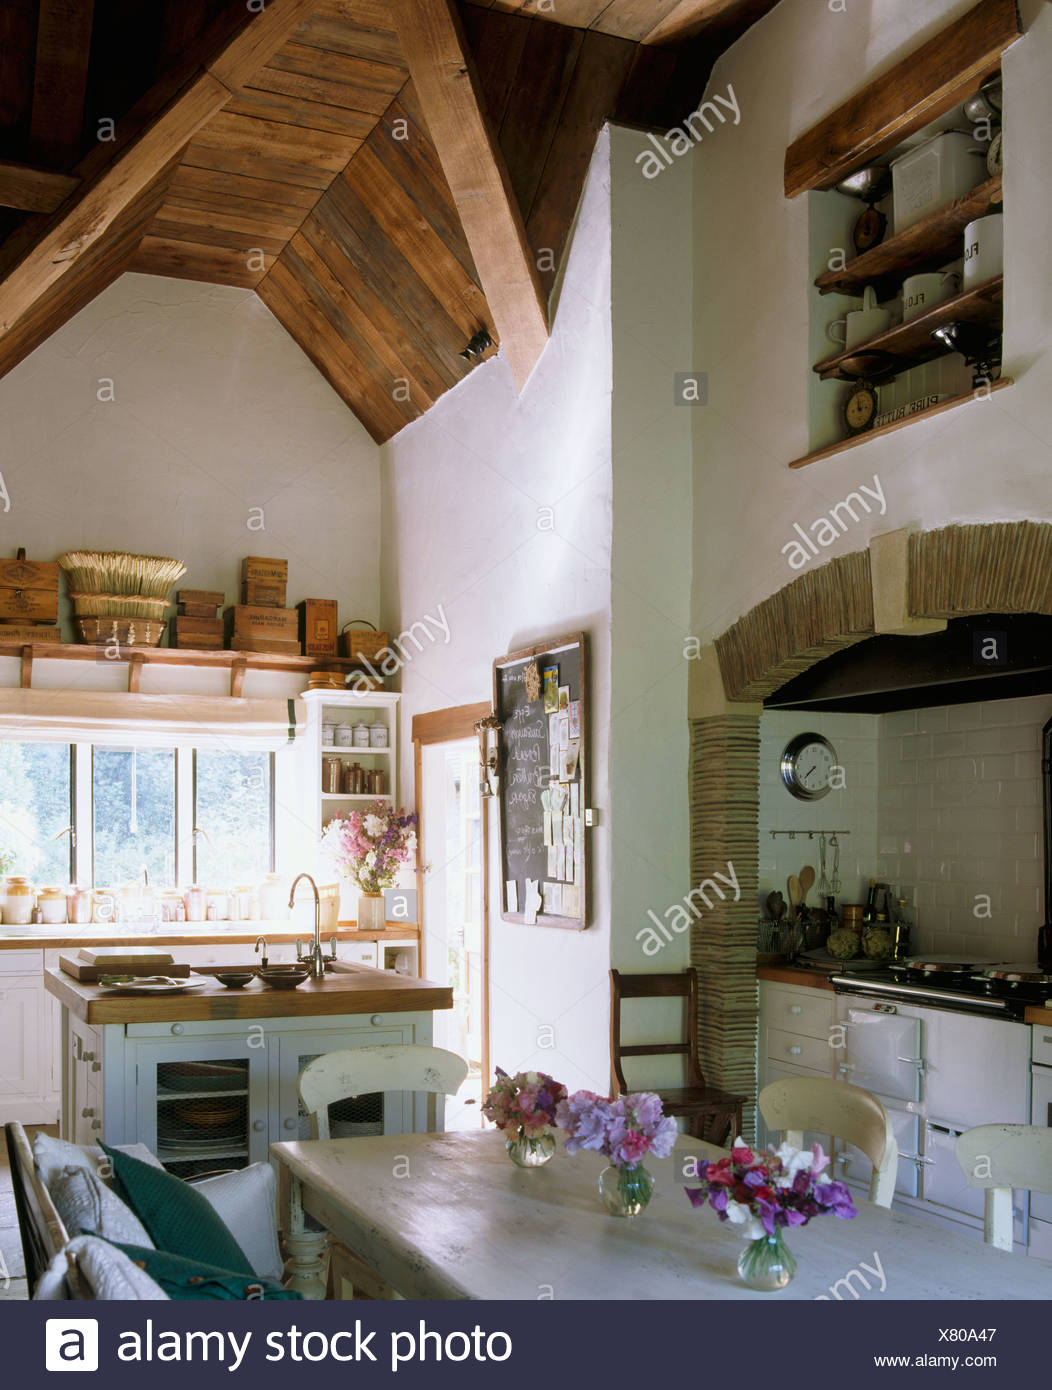 Vases of sweet peas on painted table dining area of large country kitchen with high, vaulted wooden ceiling - Stock Image